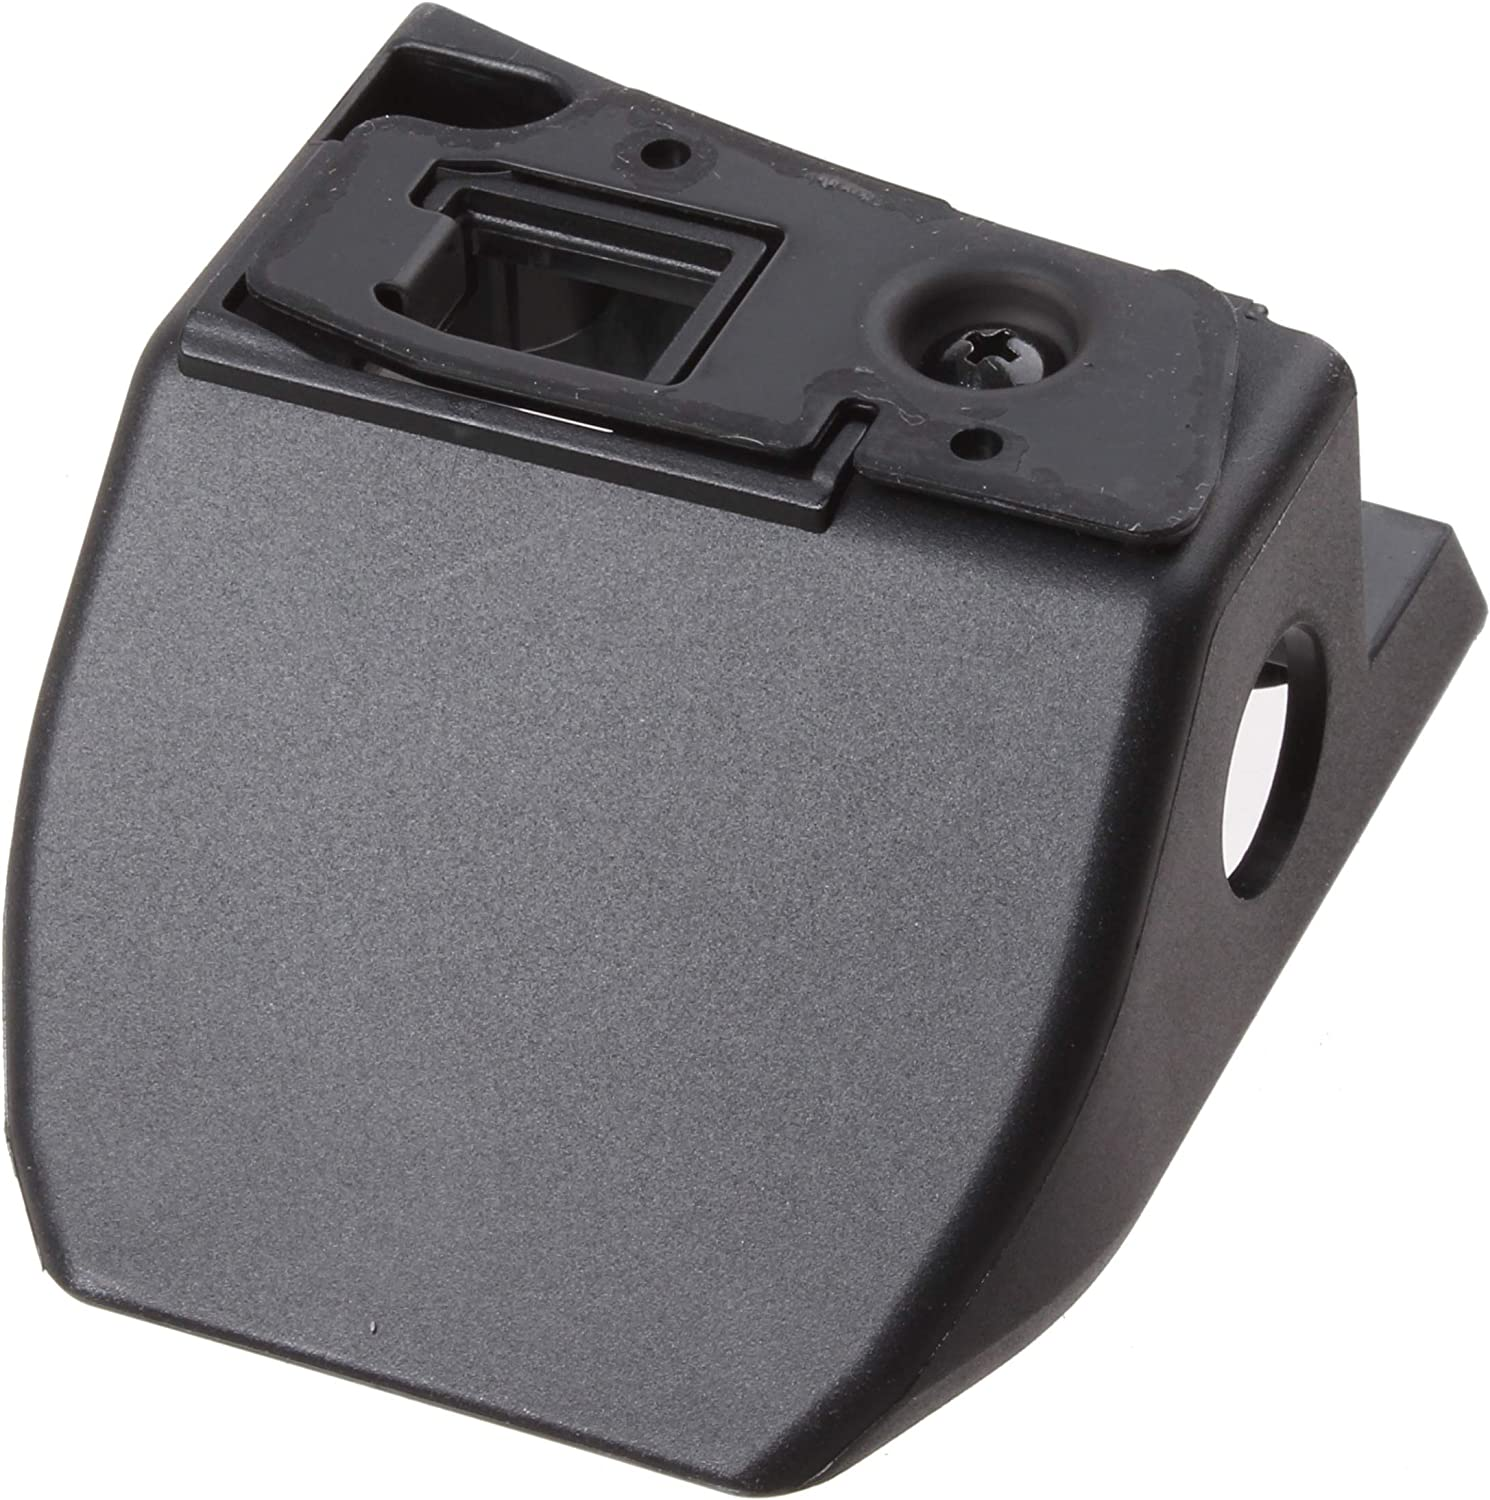 SHIMANO Superior Battery E-6010 Cycling Brackets Unisex Adult Multicolour One Size